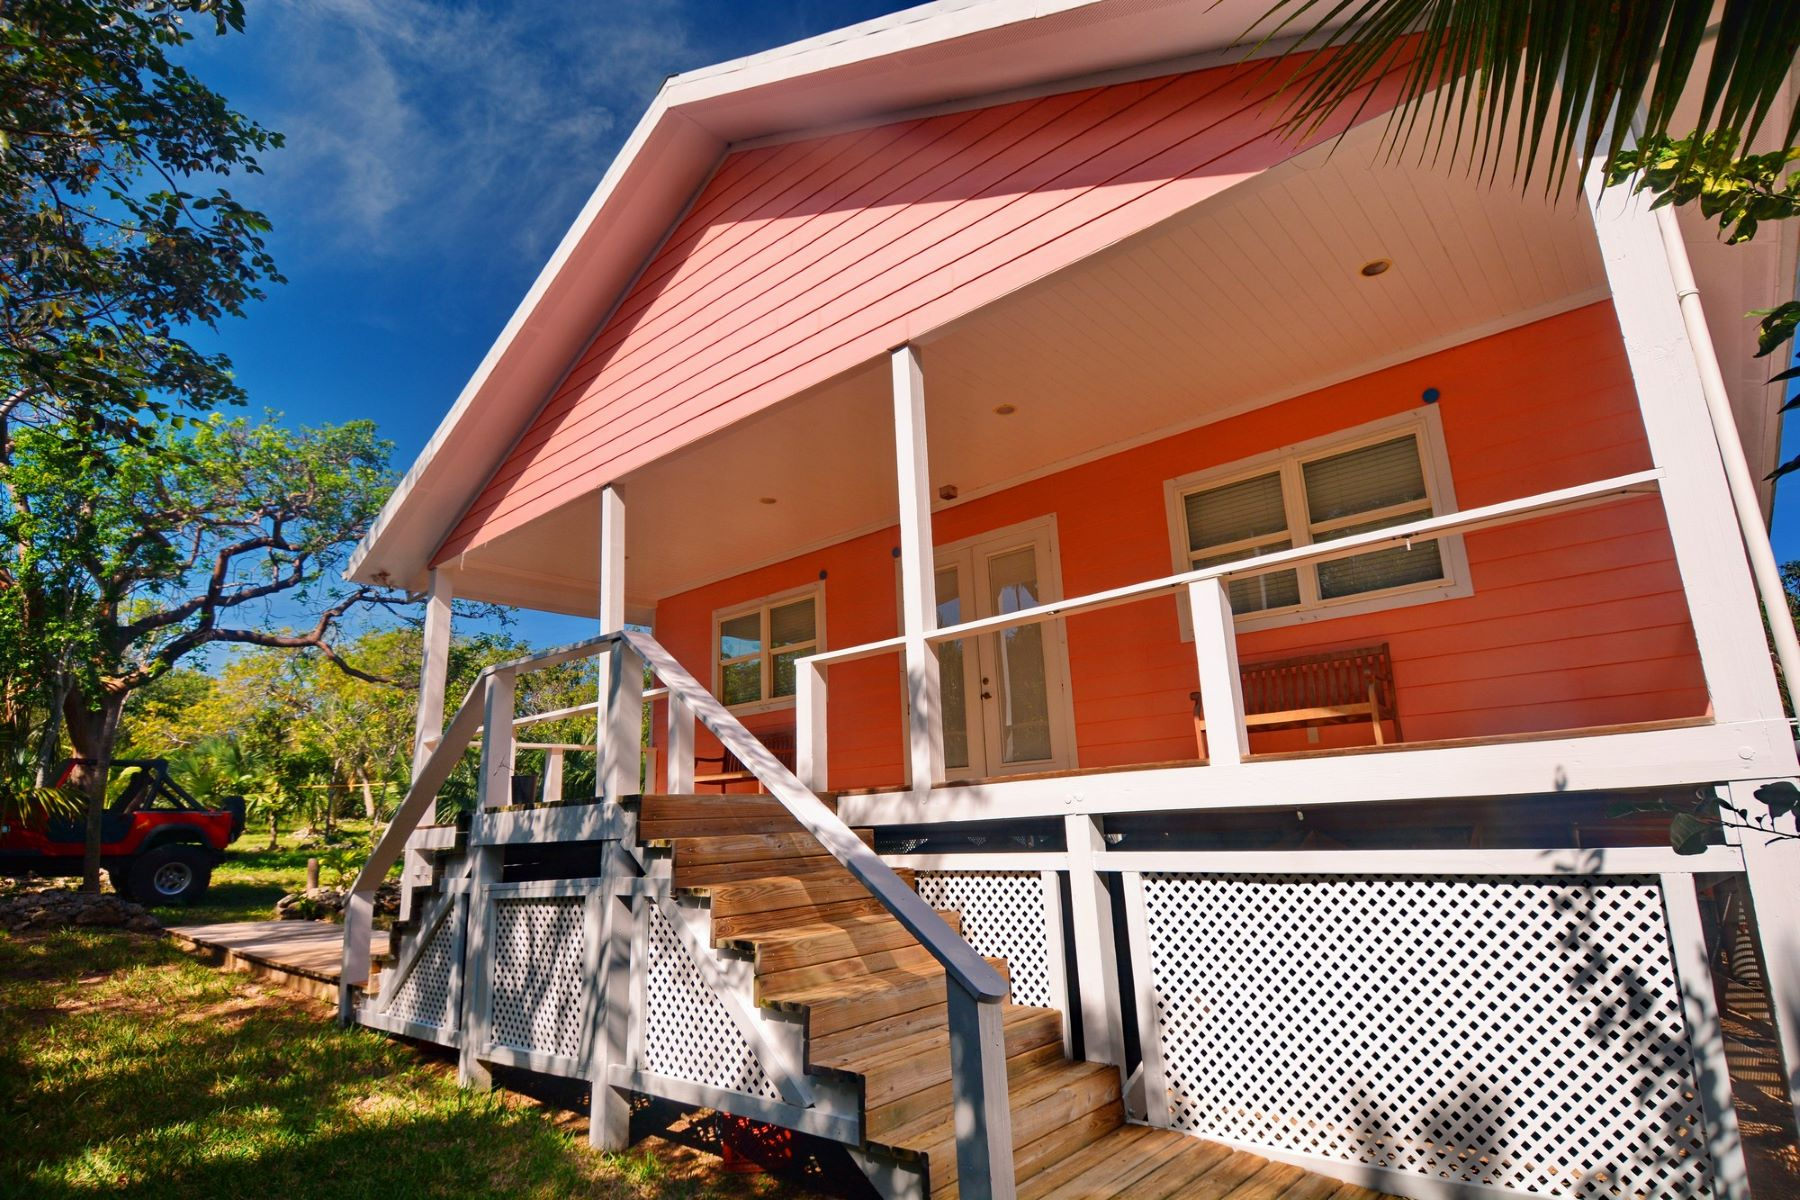 Single Family Home for Sale at Conch Pearl White Sound, Green Turtle Cay, Abaco Bahamas